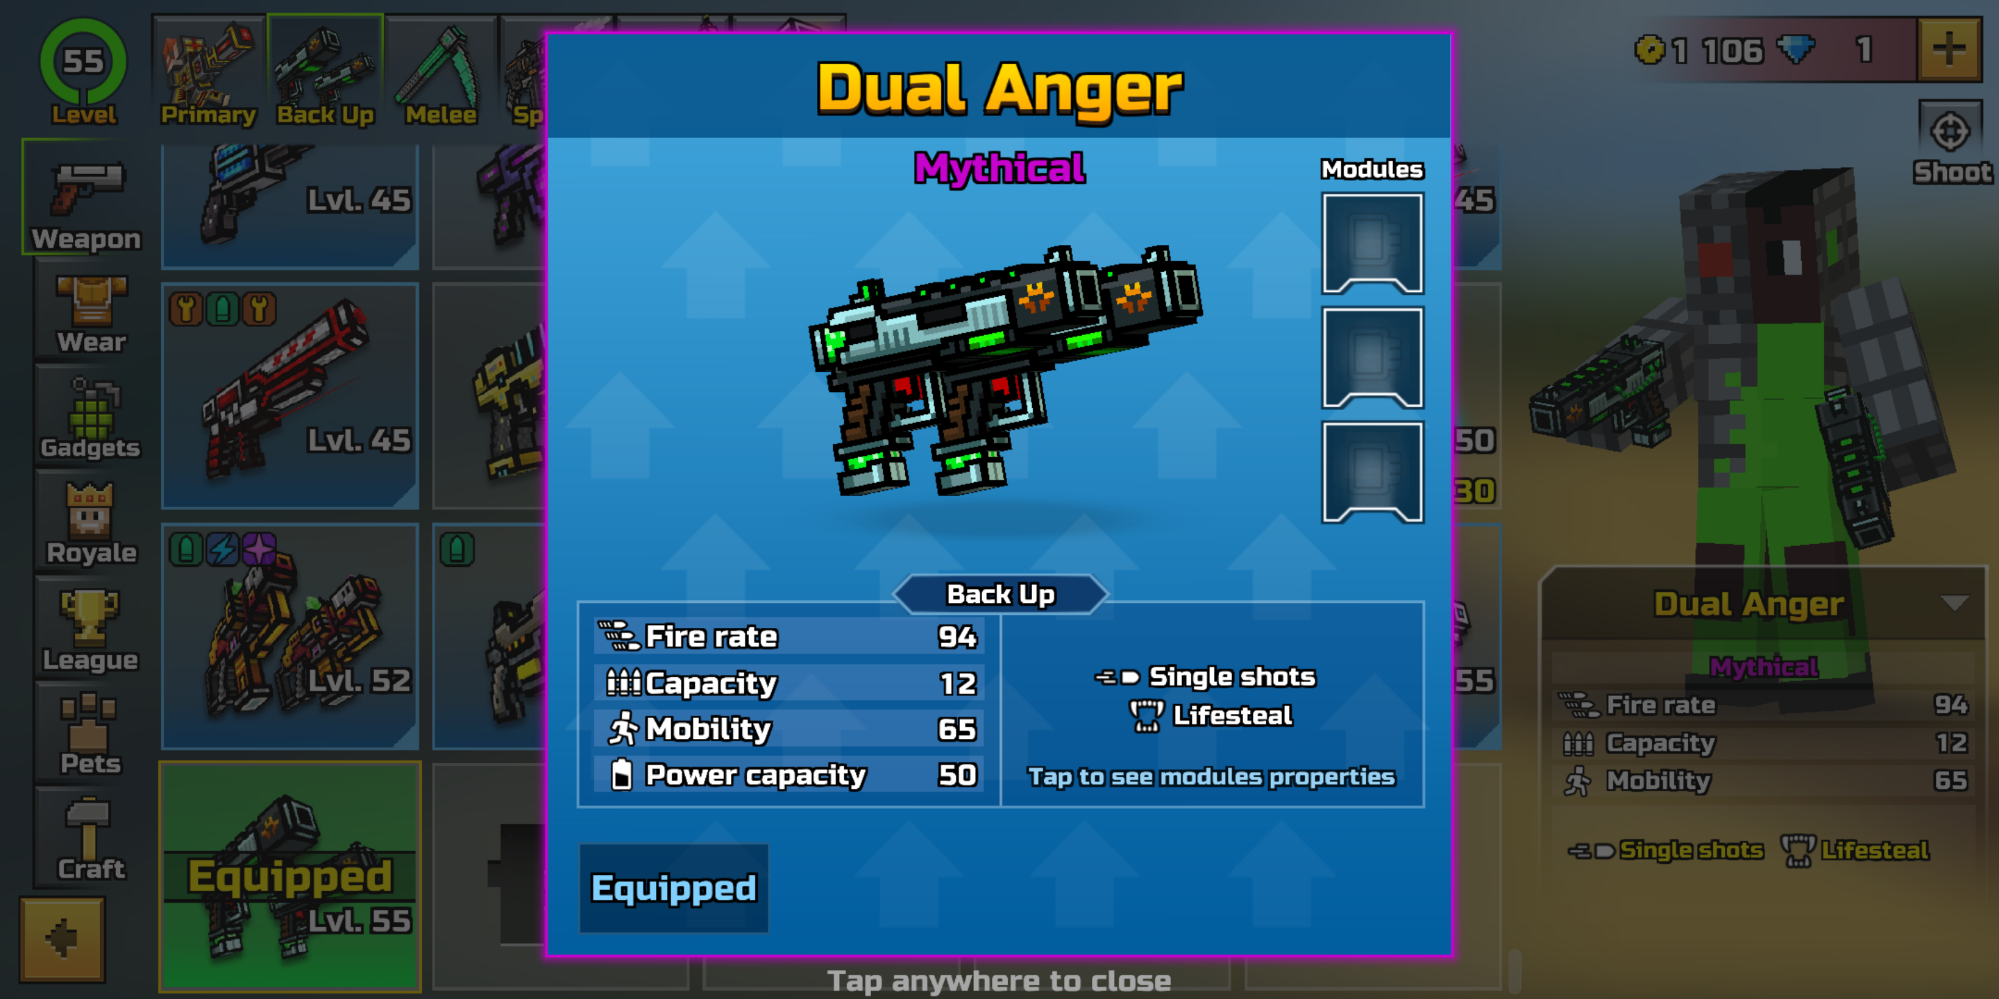 Finally got the Dual Anger